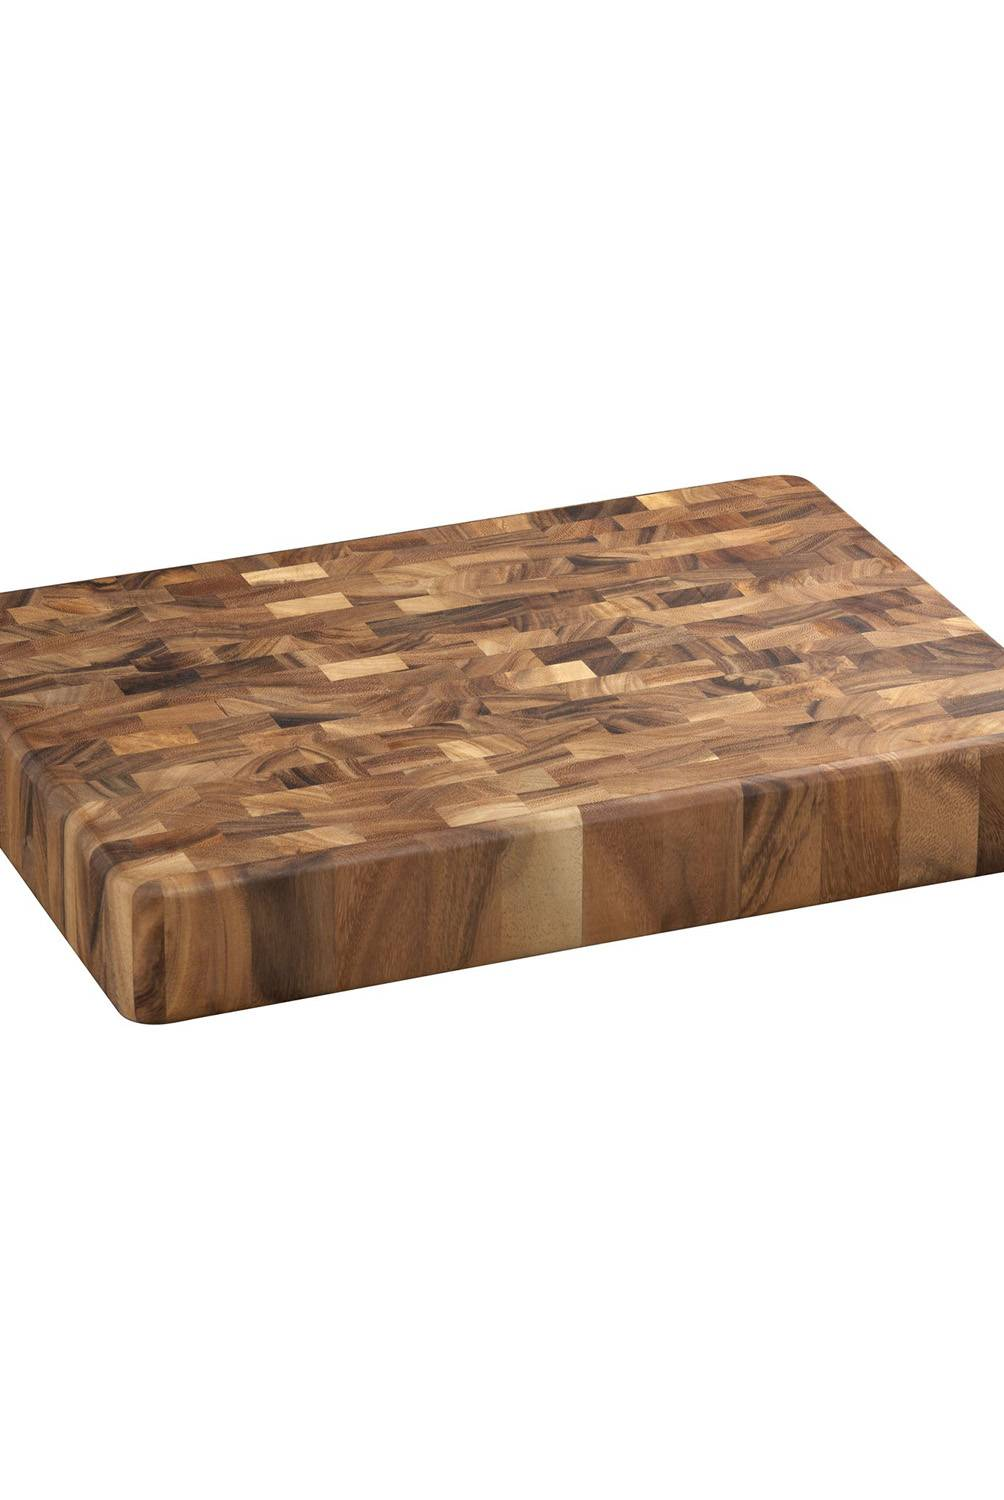 Crate & Barrel - Tabla Rectangular para Picar de Madera a Contrafibra